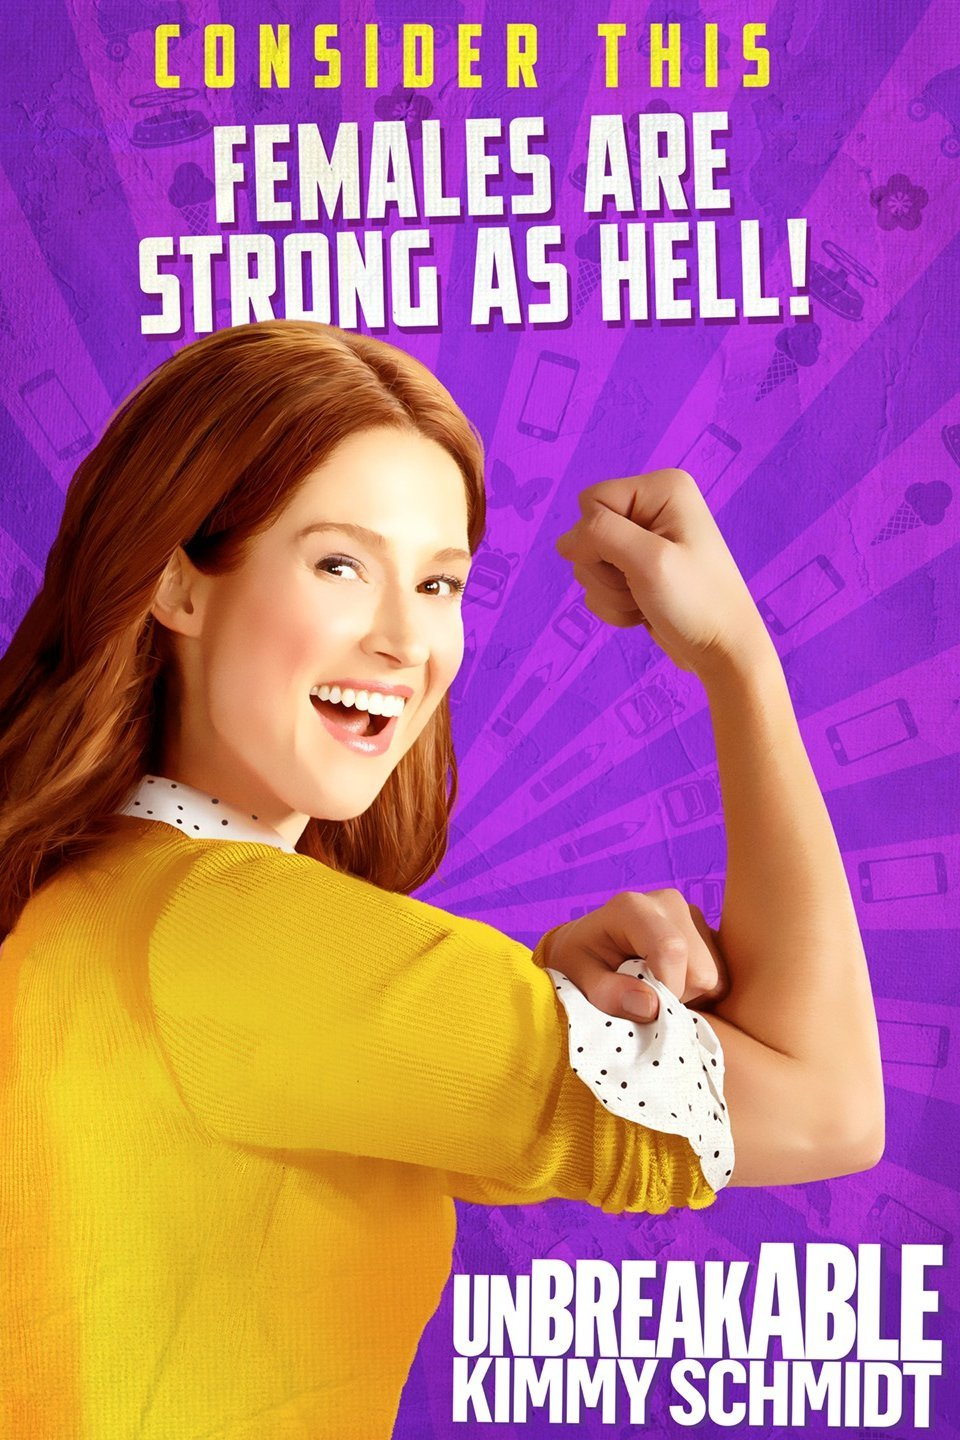 Unbreakable Kimmy Schmidt Season 1 Complete 480p WEB-DL